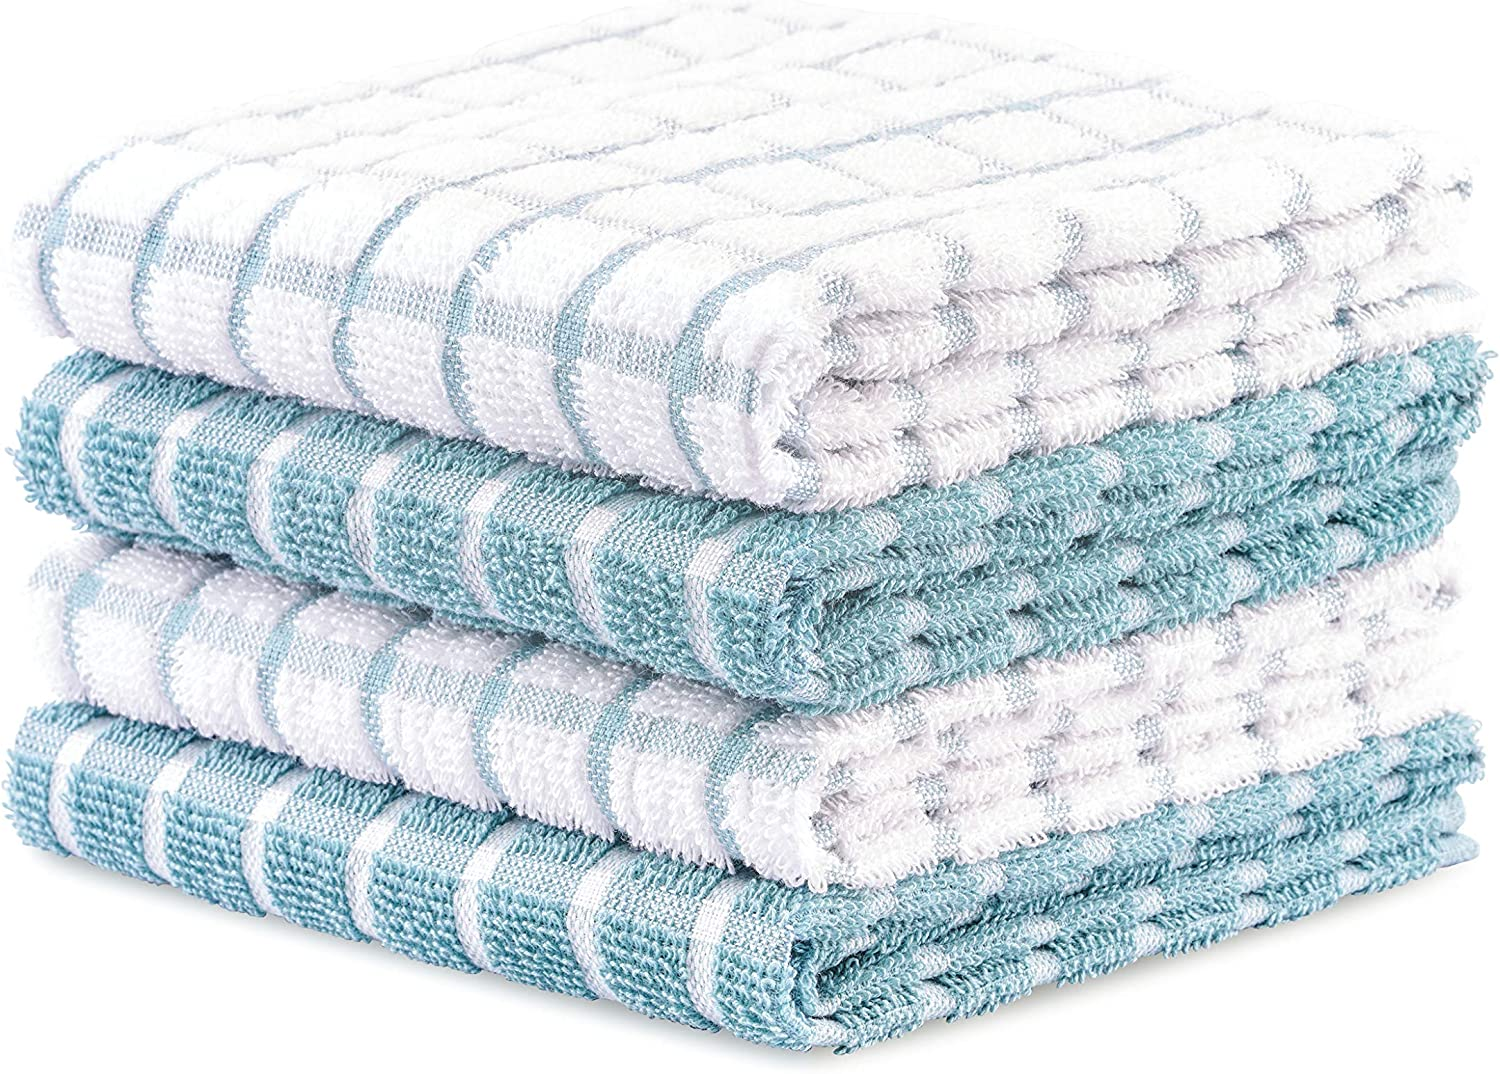 DAILY HOME ESSENTIALS - 4 Pack Cotton Terry Kitchen Dish Towel Set (16x26 Inches - Aqua, Checked Design) |Super Soft and Highly Absorbent|Perfect for Everyday Household & Commercial Use